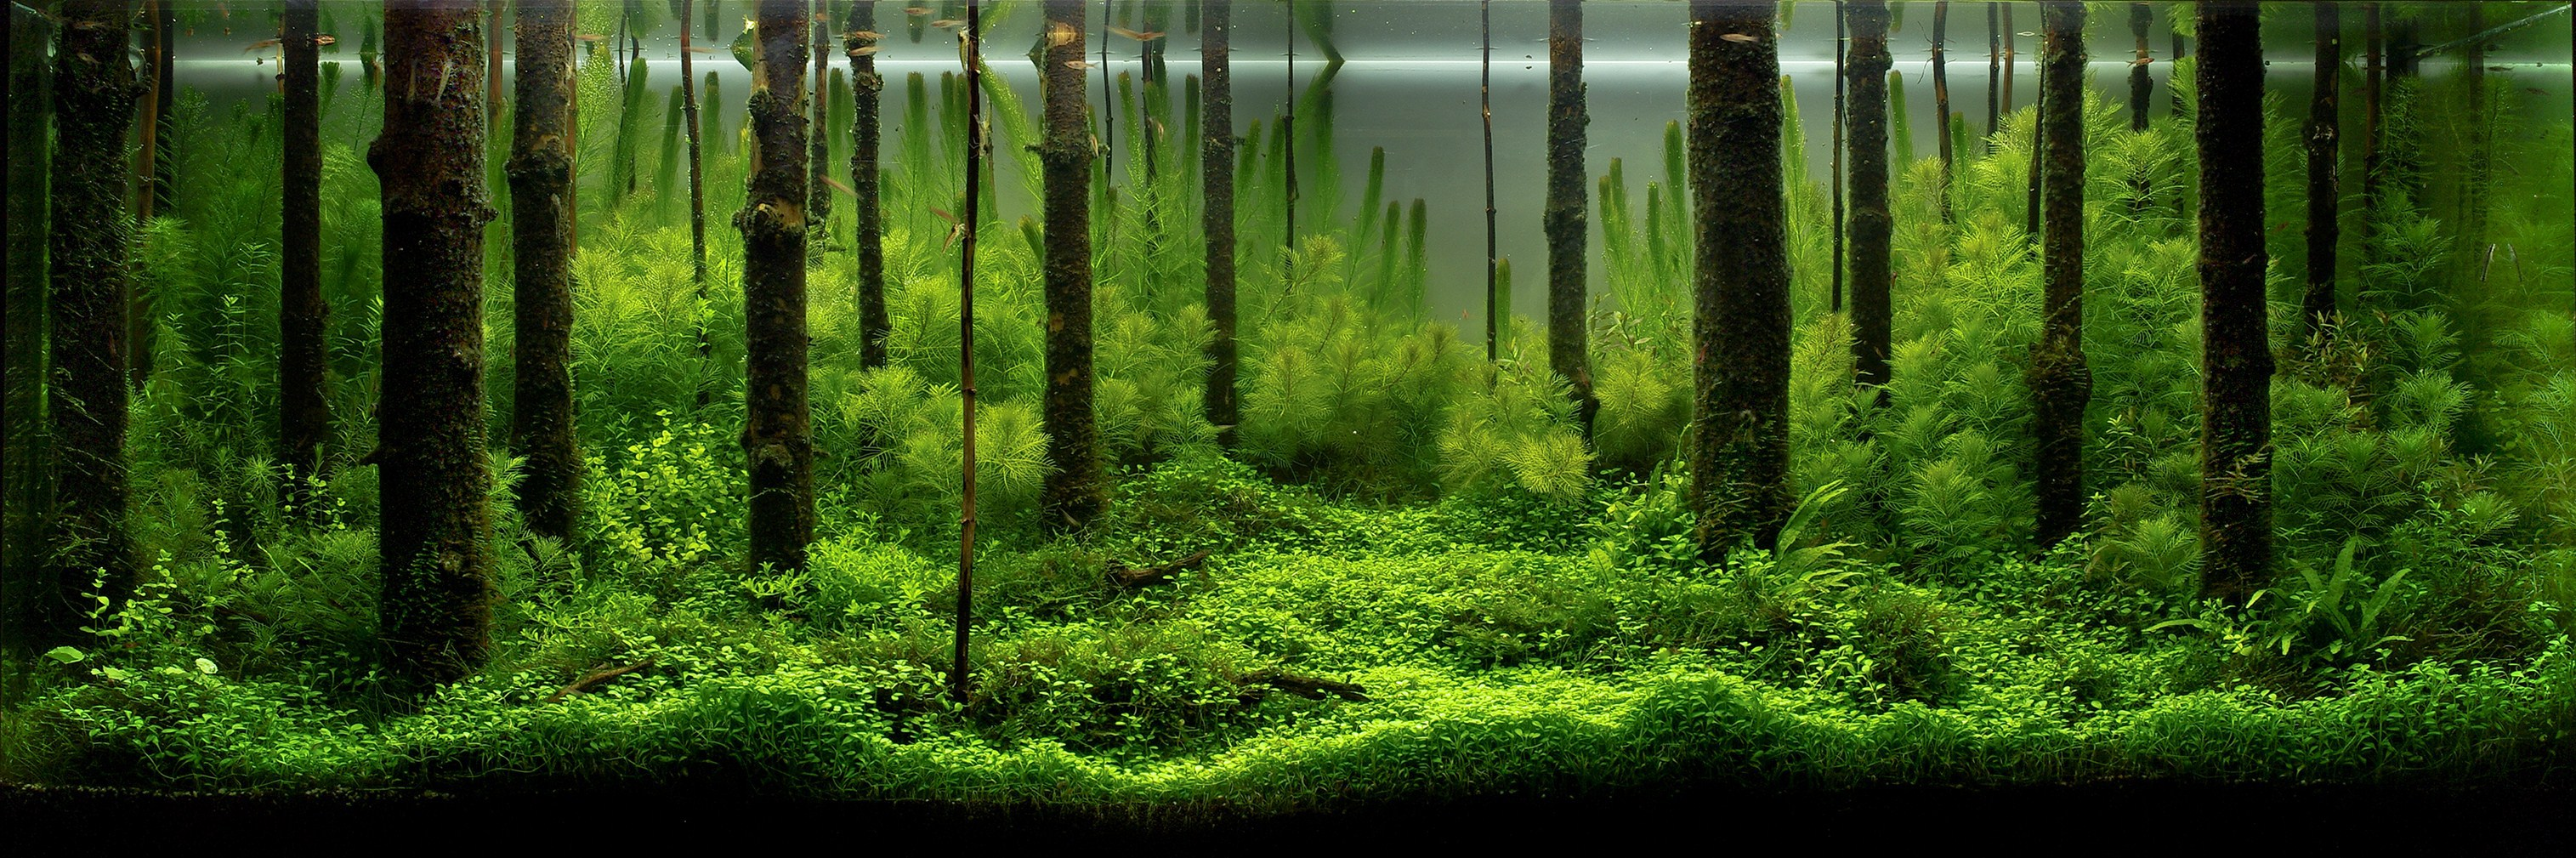 'Forest Scent' aquascape by Pavel Bautin